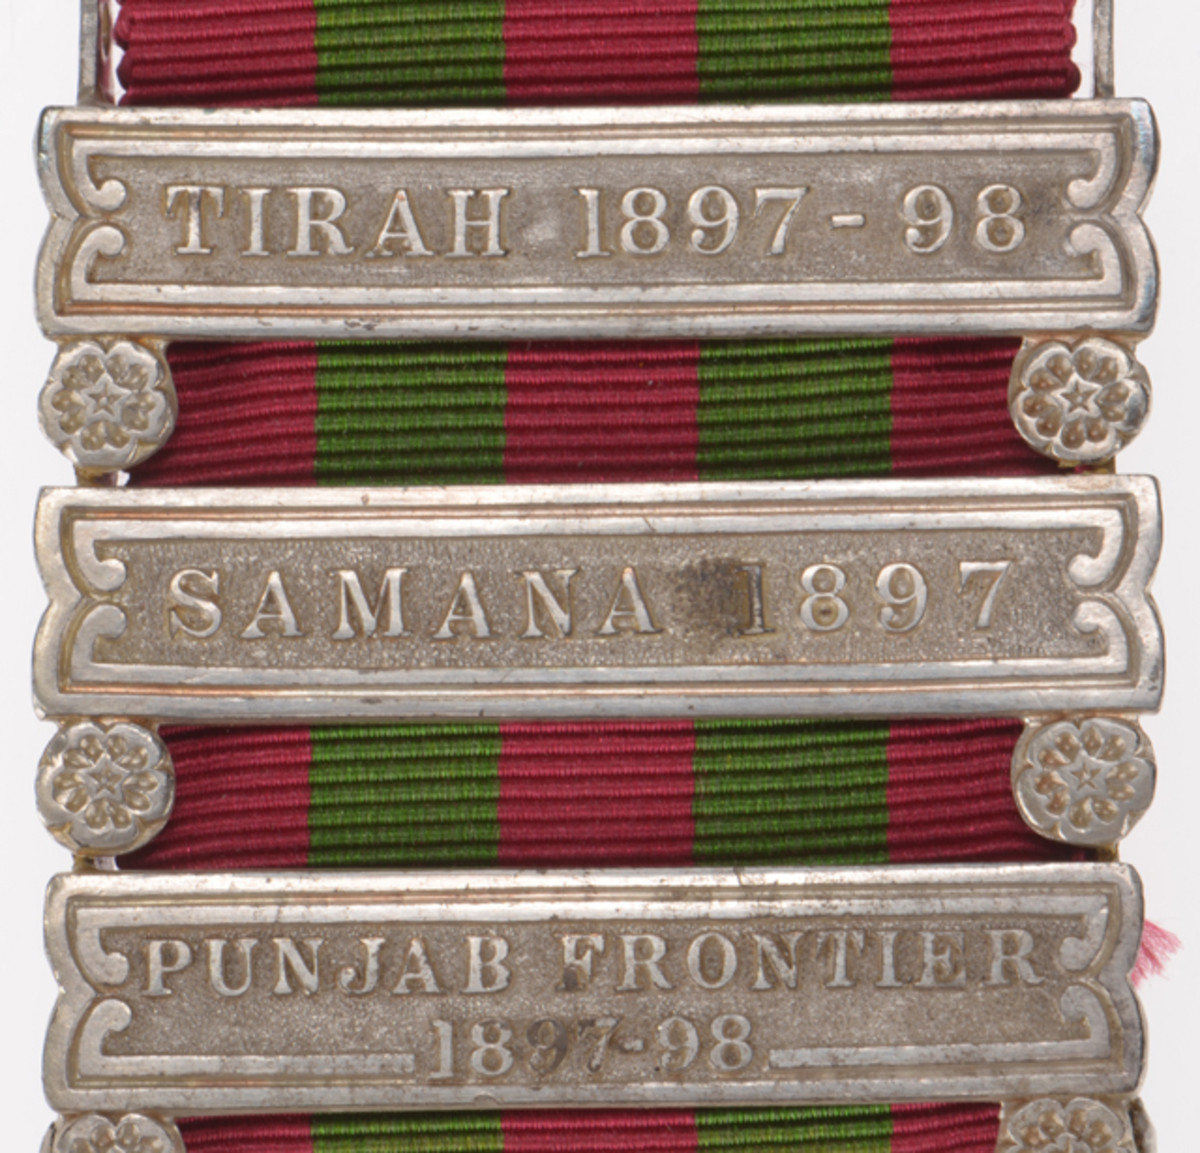 Clasps help tell the history of a medal's recipient. Used to denote a specific campaign or action, they are usually attached directly to the medal's suspender with subsequent clasps added above.